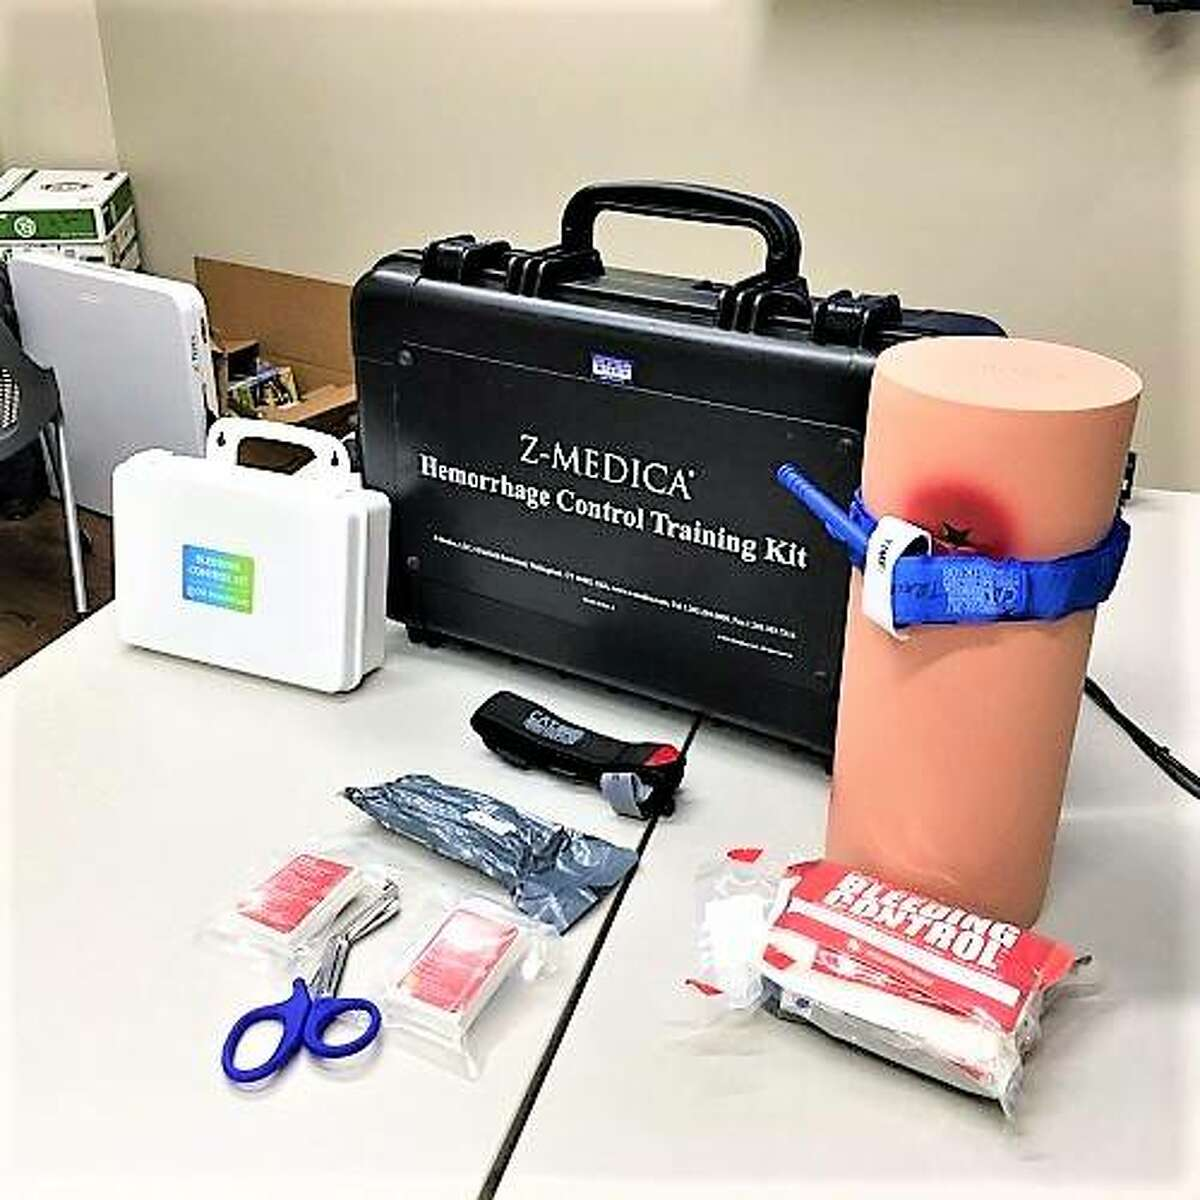 A Stop the Bleed kit can be used by bystanders to help in a bleeding emergency before professional help arrives.